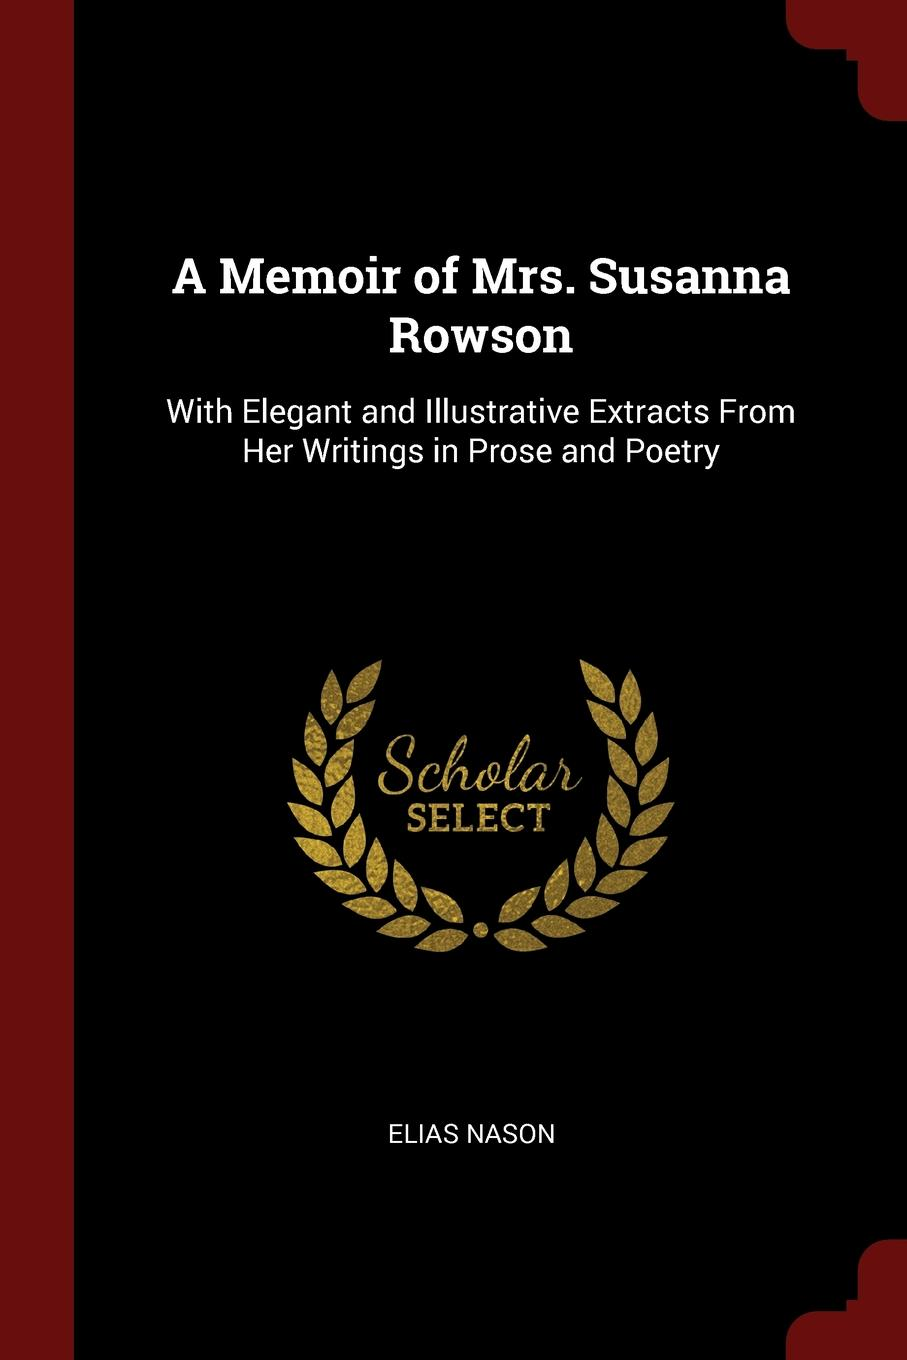 A Memoir of Mrs. Susanna Rowson. With Elegant and Illustrative Extracts From Her Writings in Prose and Poetry